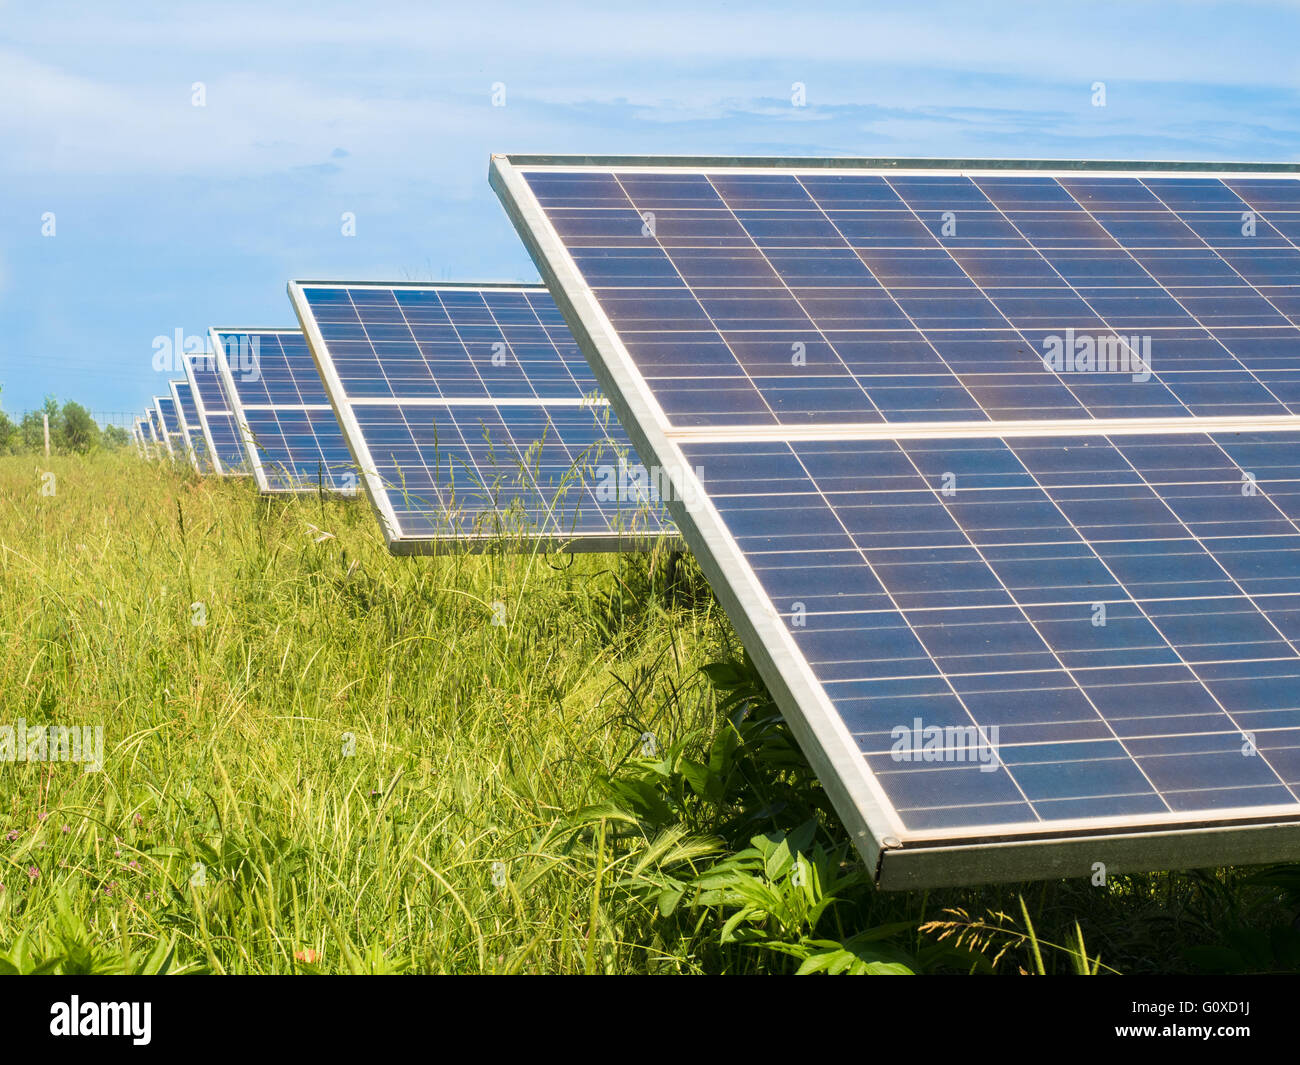 Photovoltaic panels installed in a green meadow. - Stock Image